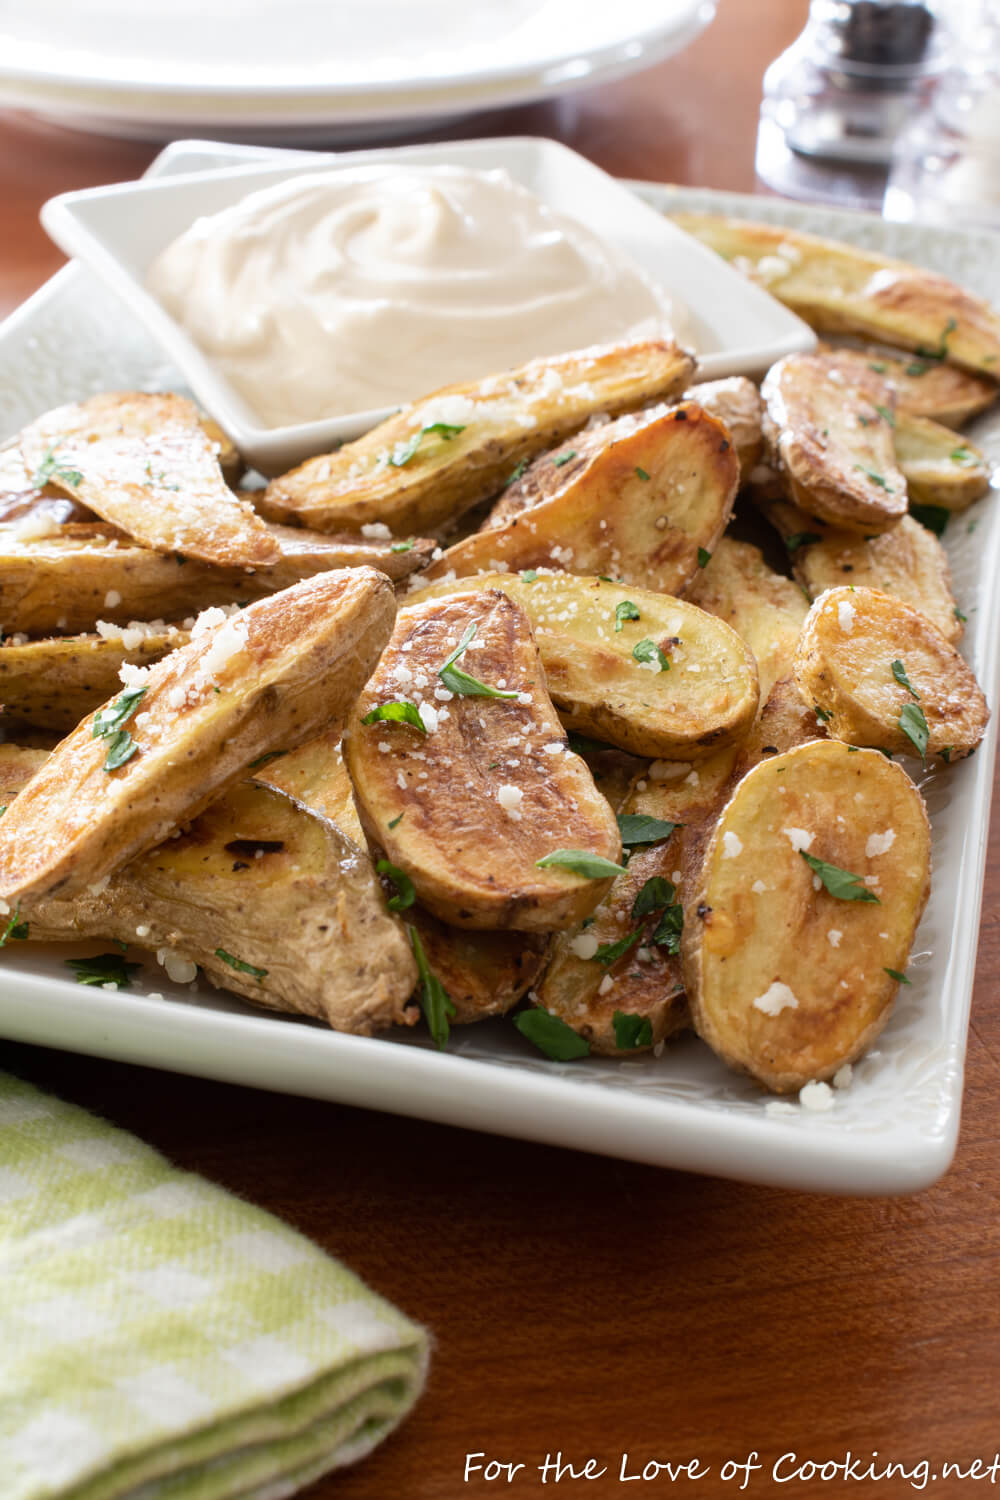 Roasted Fingerling Potatoes with Soy-Garlic Aioli